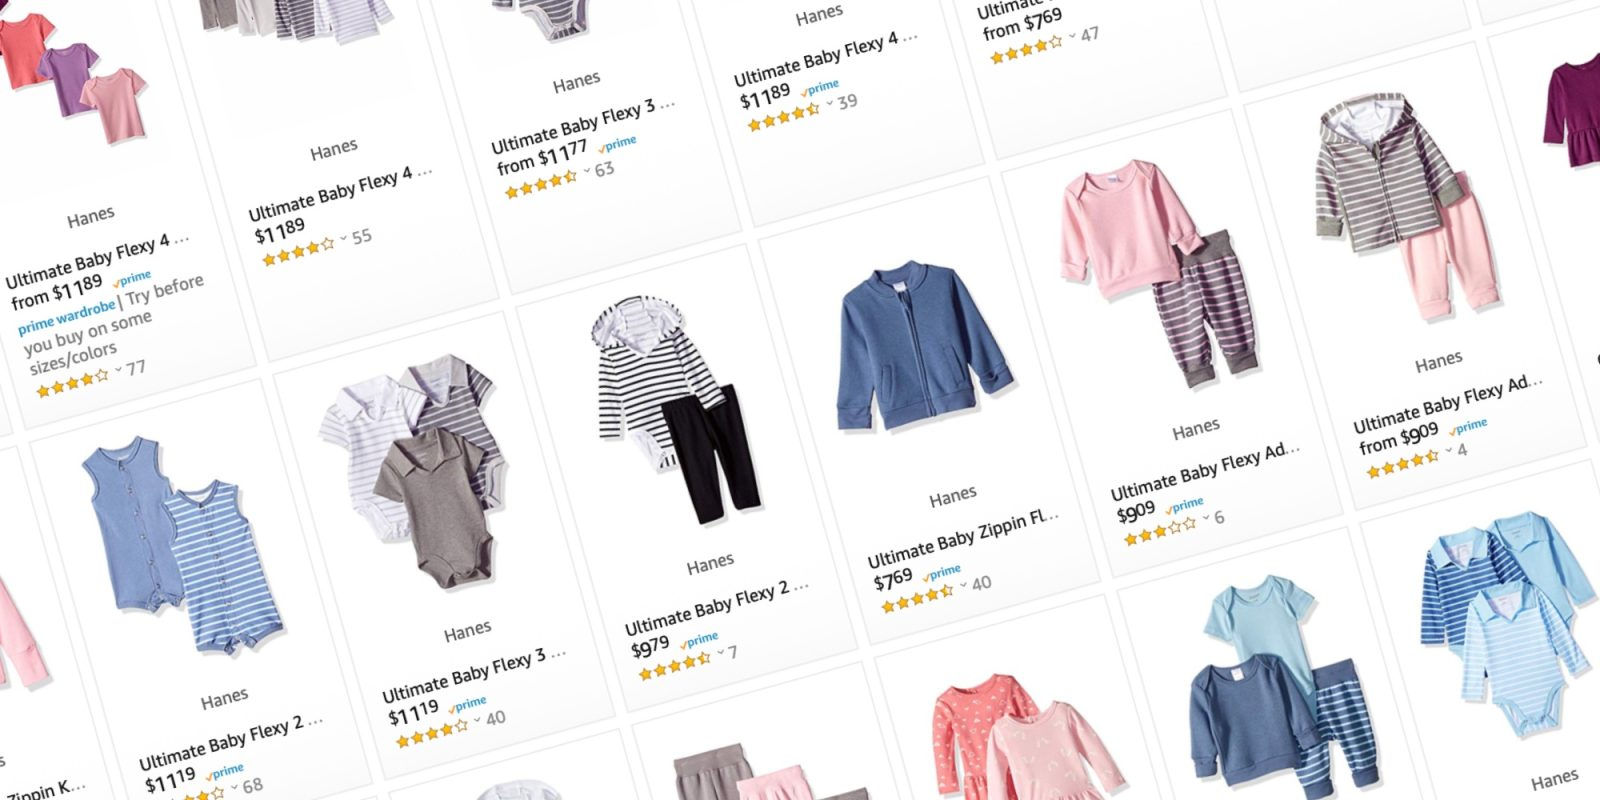 Today's Amazon Gold Box takes up to 30% off Hanes baby clothing starting at $7